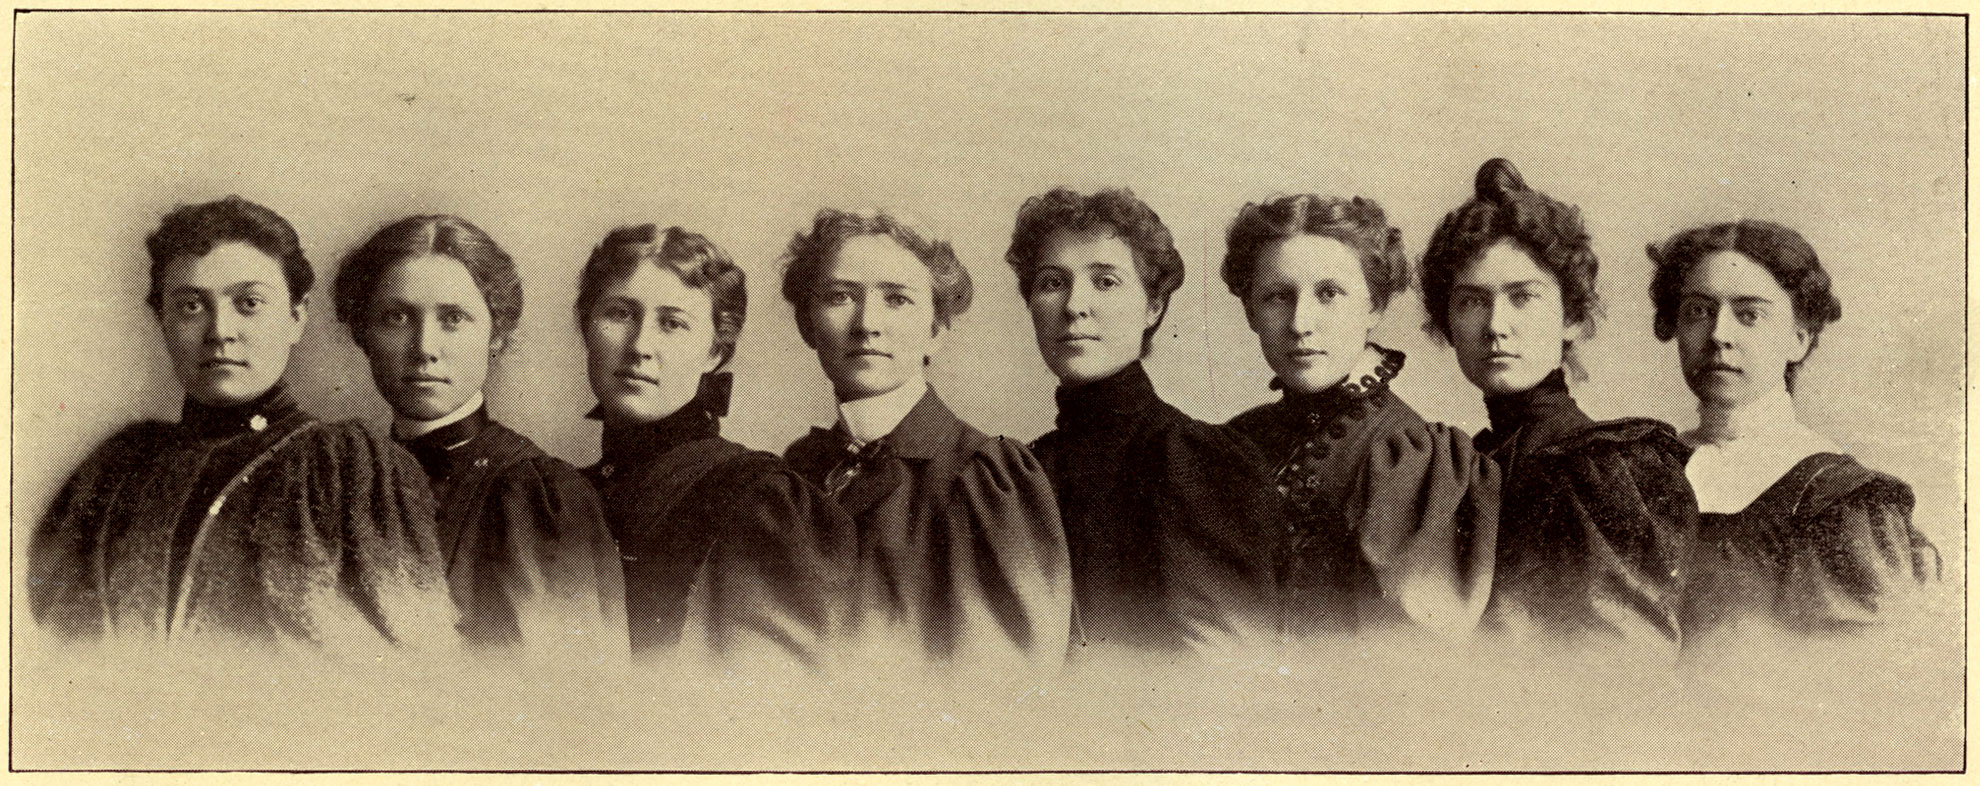 M. Evangeline Jordon (center) with Alpha Upsilon Phi dental sorority. Photo courtesy of Archives and Special Collections, Library and Center for Knowledge Management, University of California, San Francisco